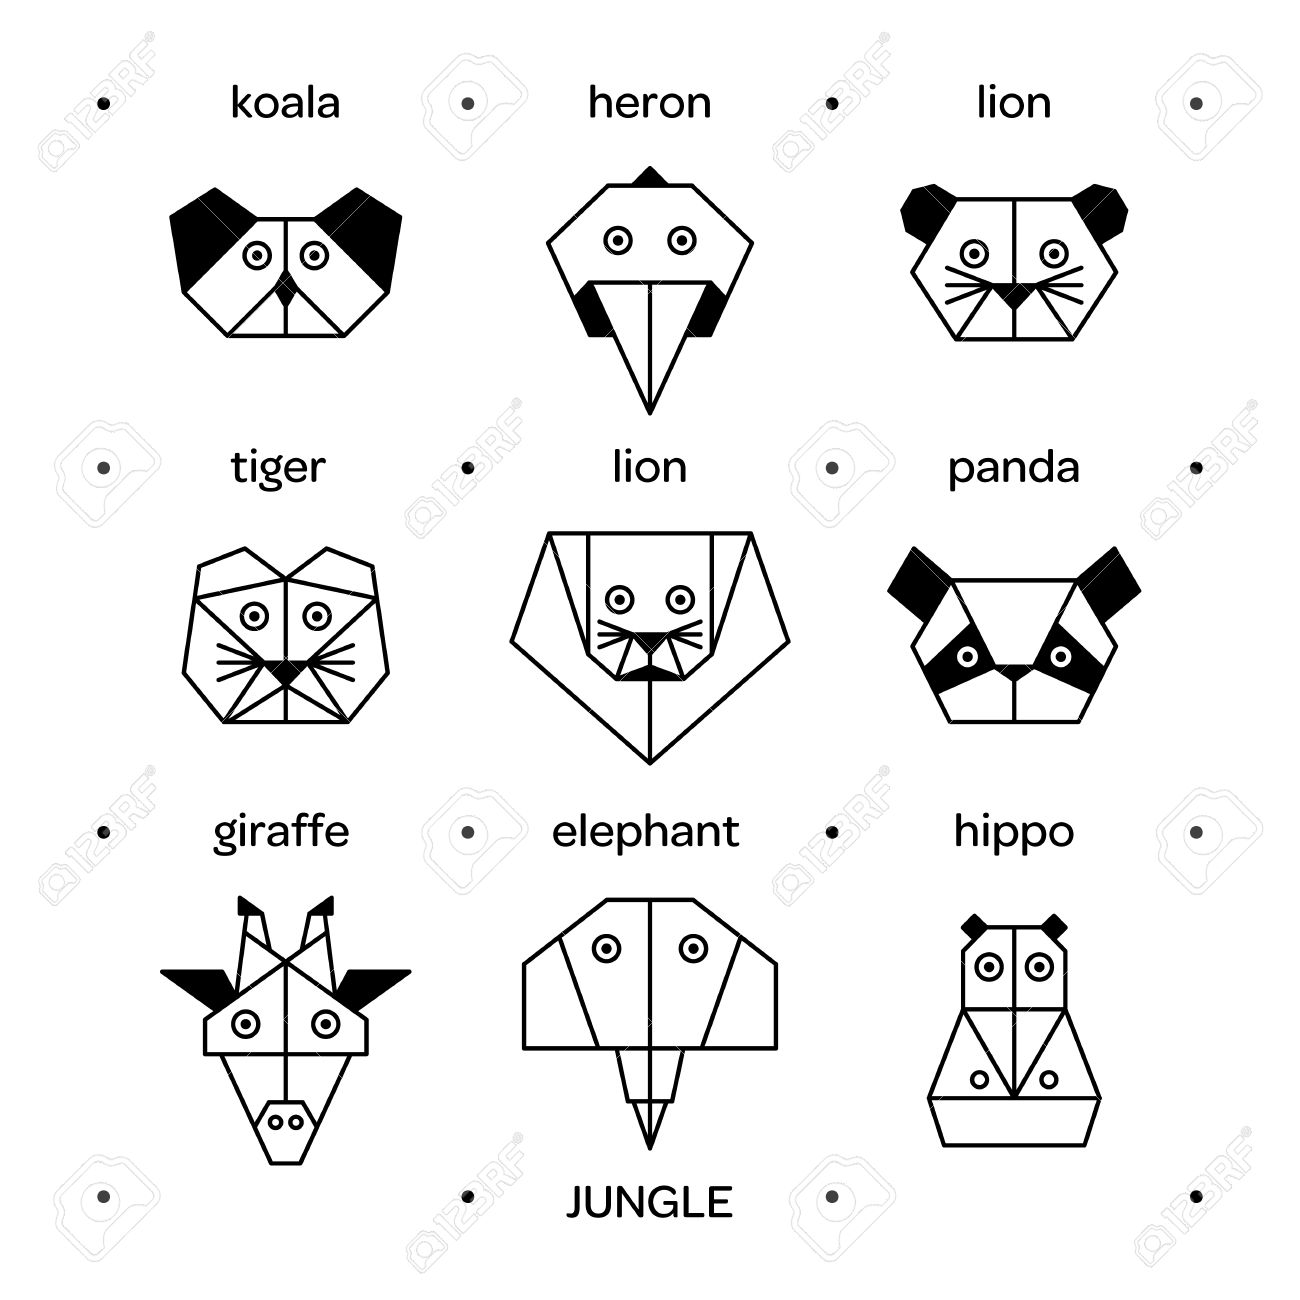 Stylized Vector Animals Animal Triangle Heads Origami Geometric Line Design Icon